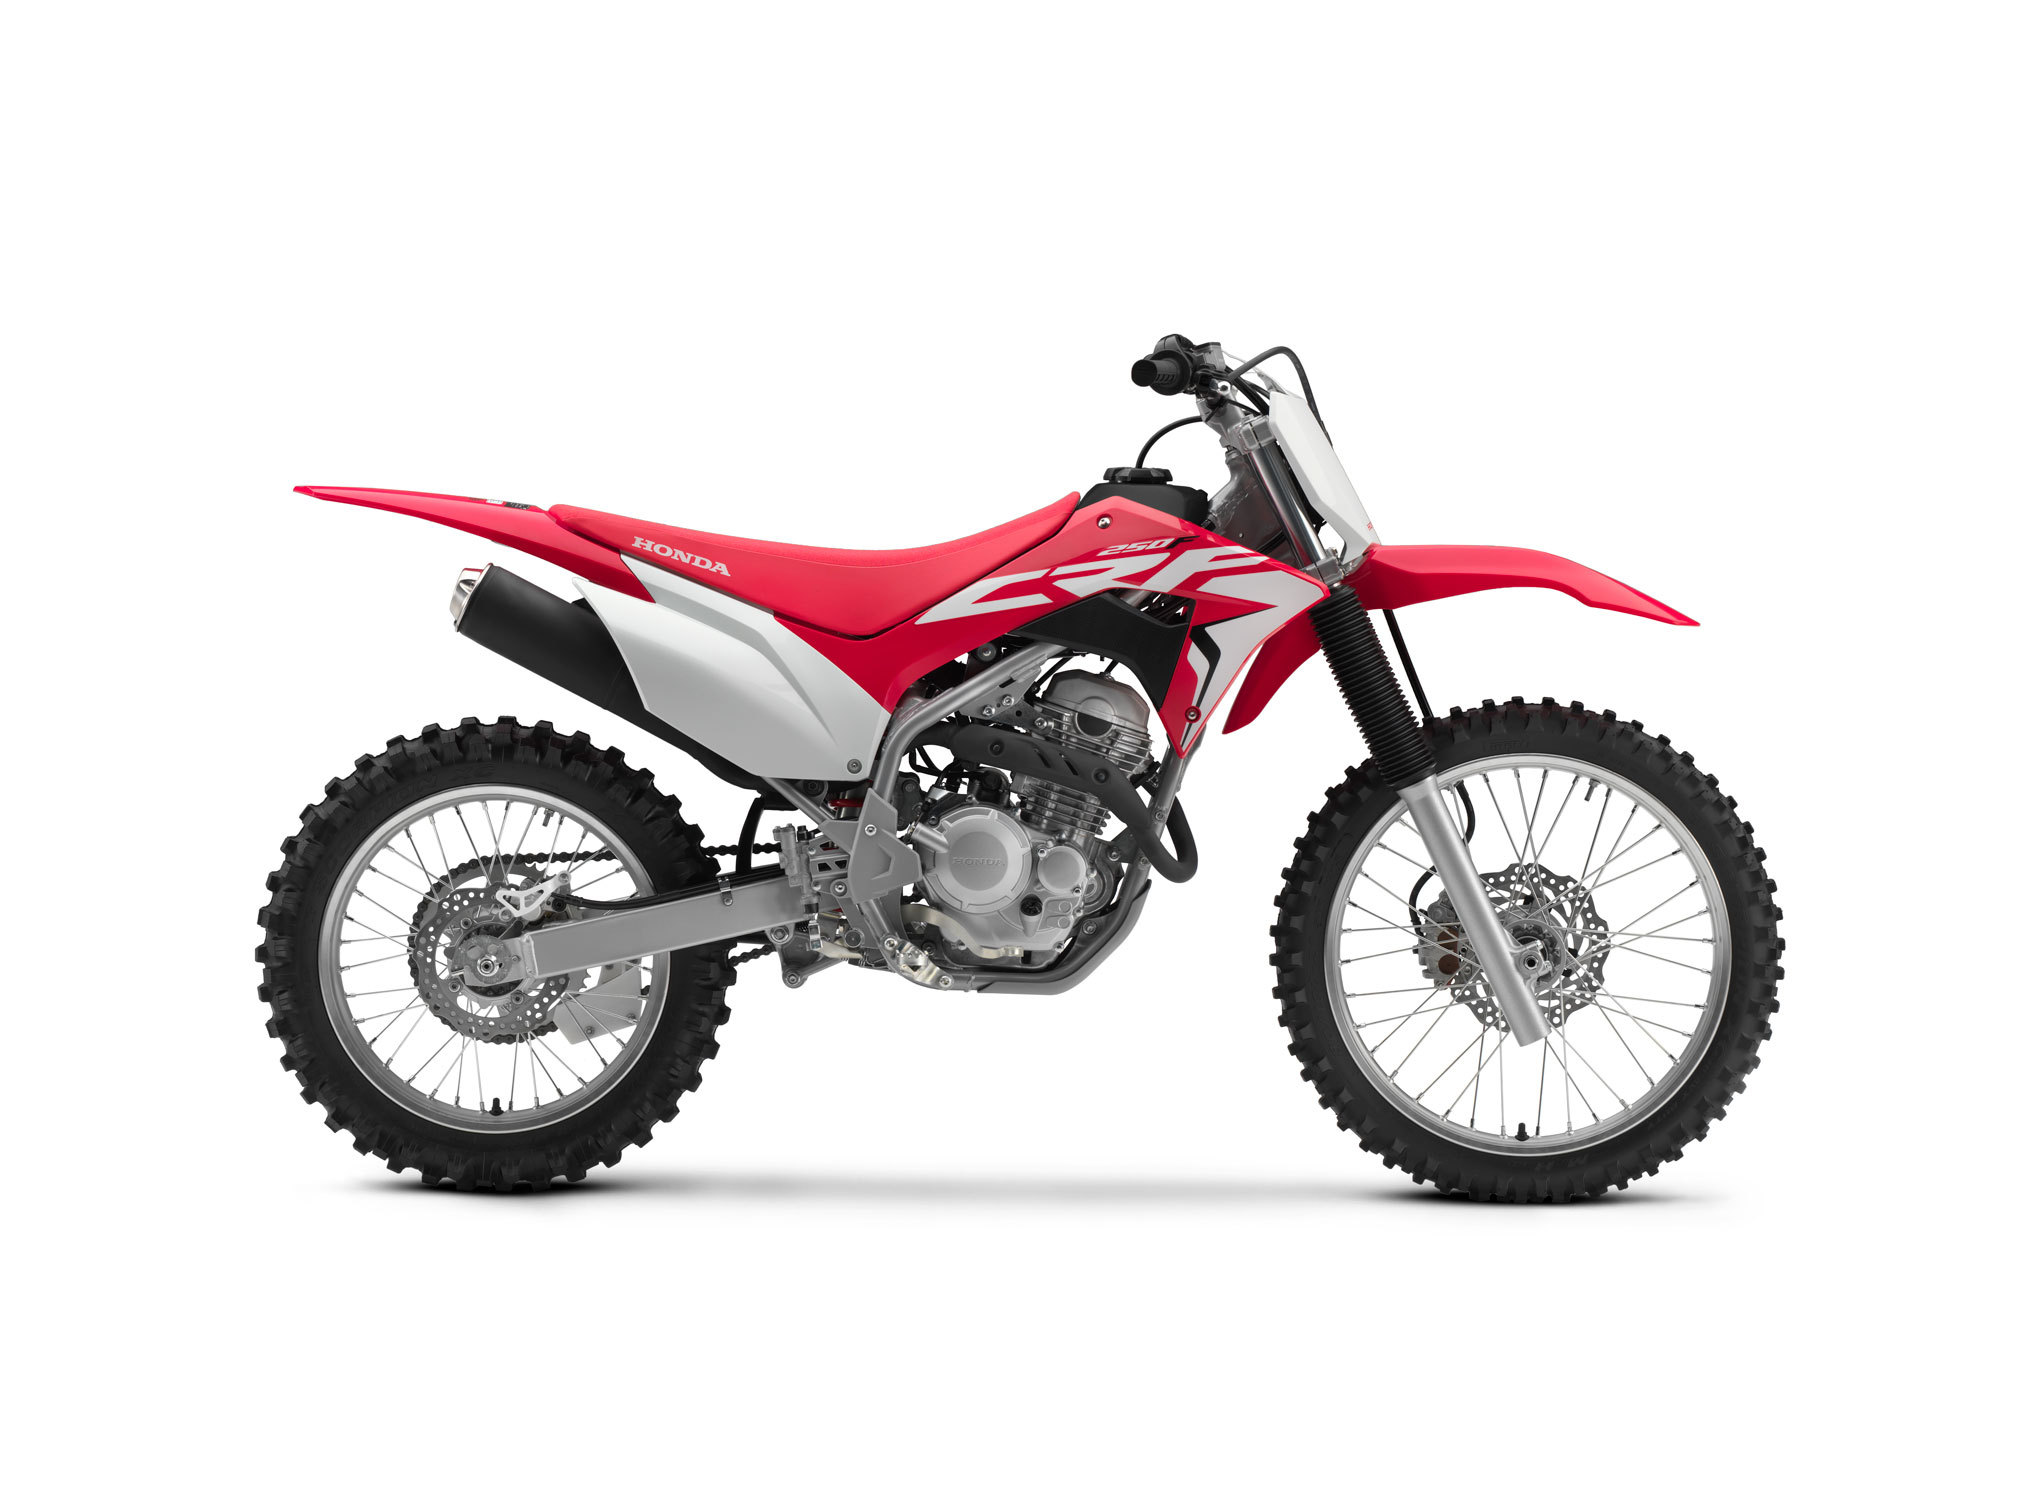 2021 honda crf250f guide • total motorcycle